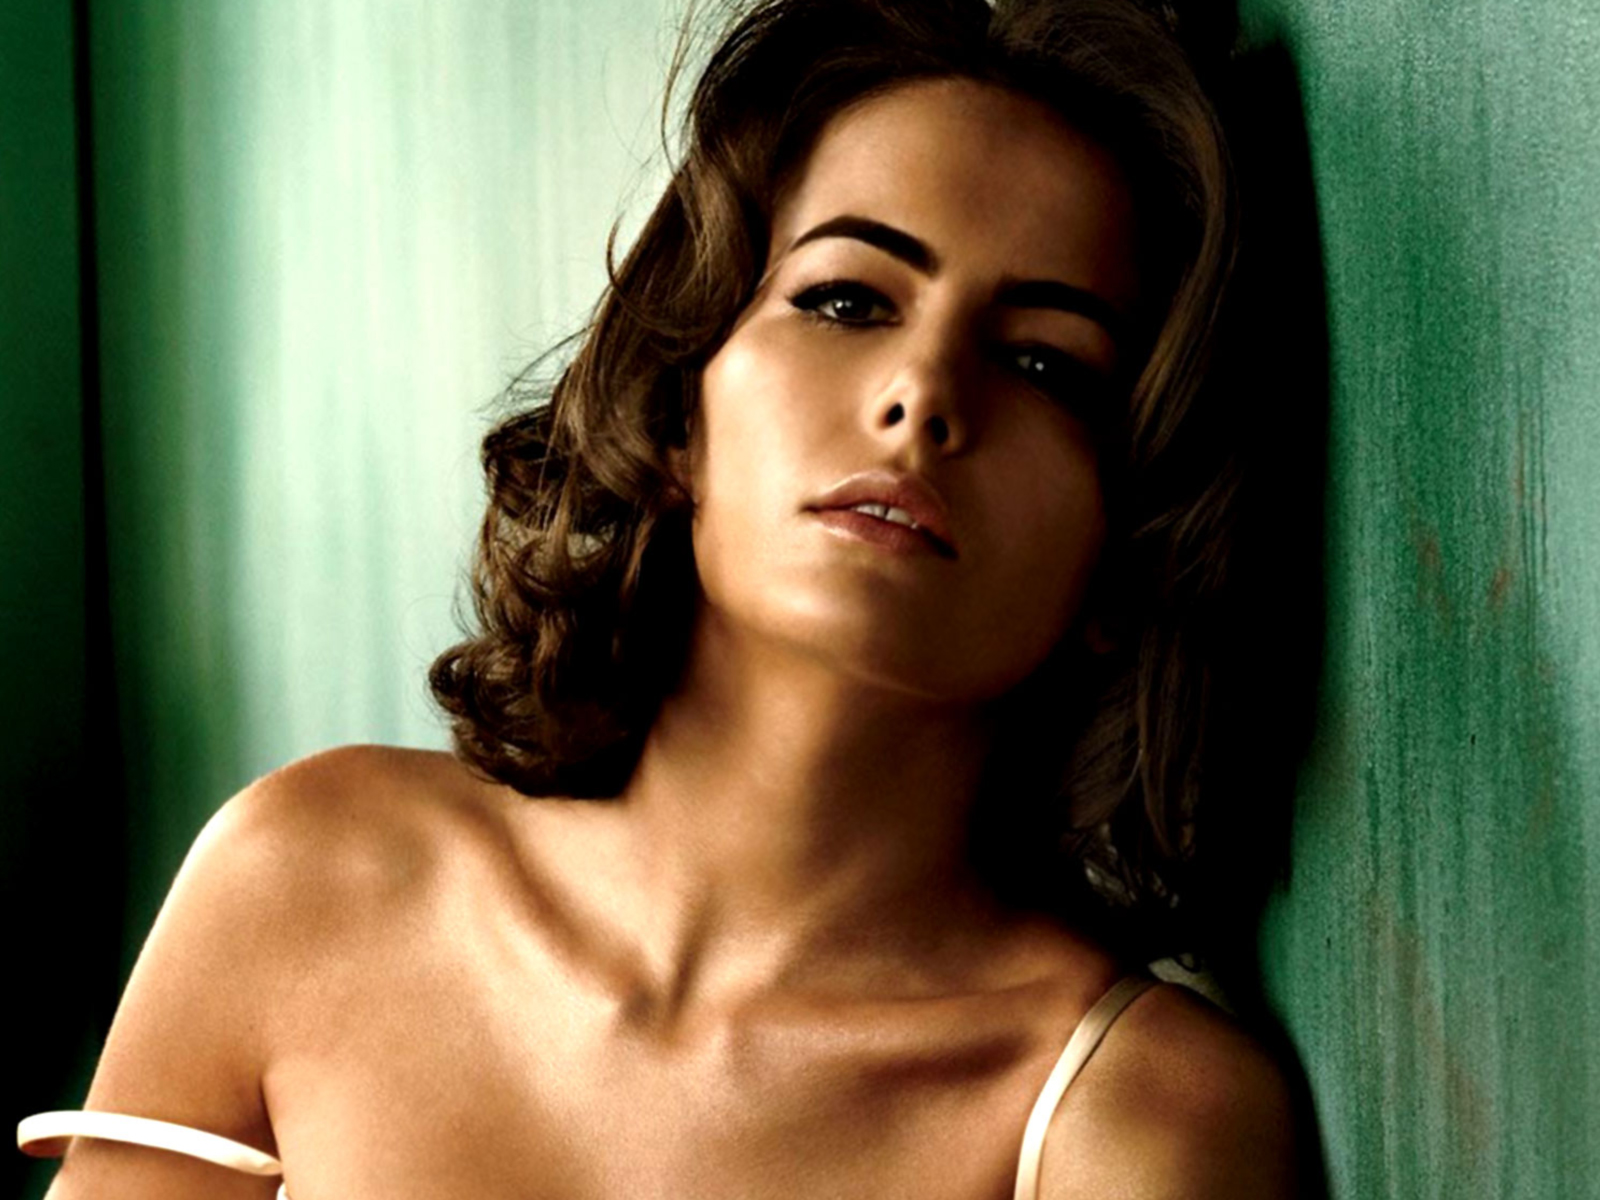 lovely wallpapers camilla belle hot wallpapers 2012. Black Bedroom Furniture Sets. Home Design Ideas